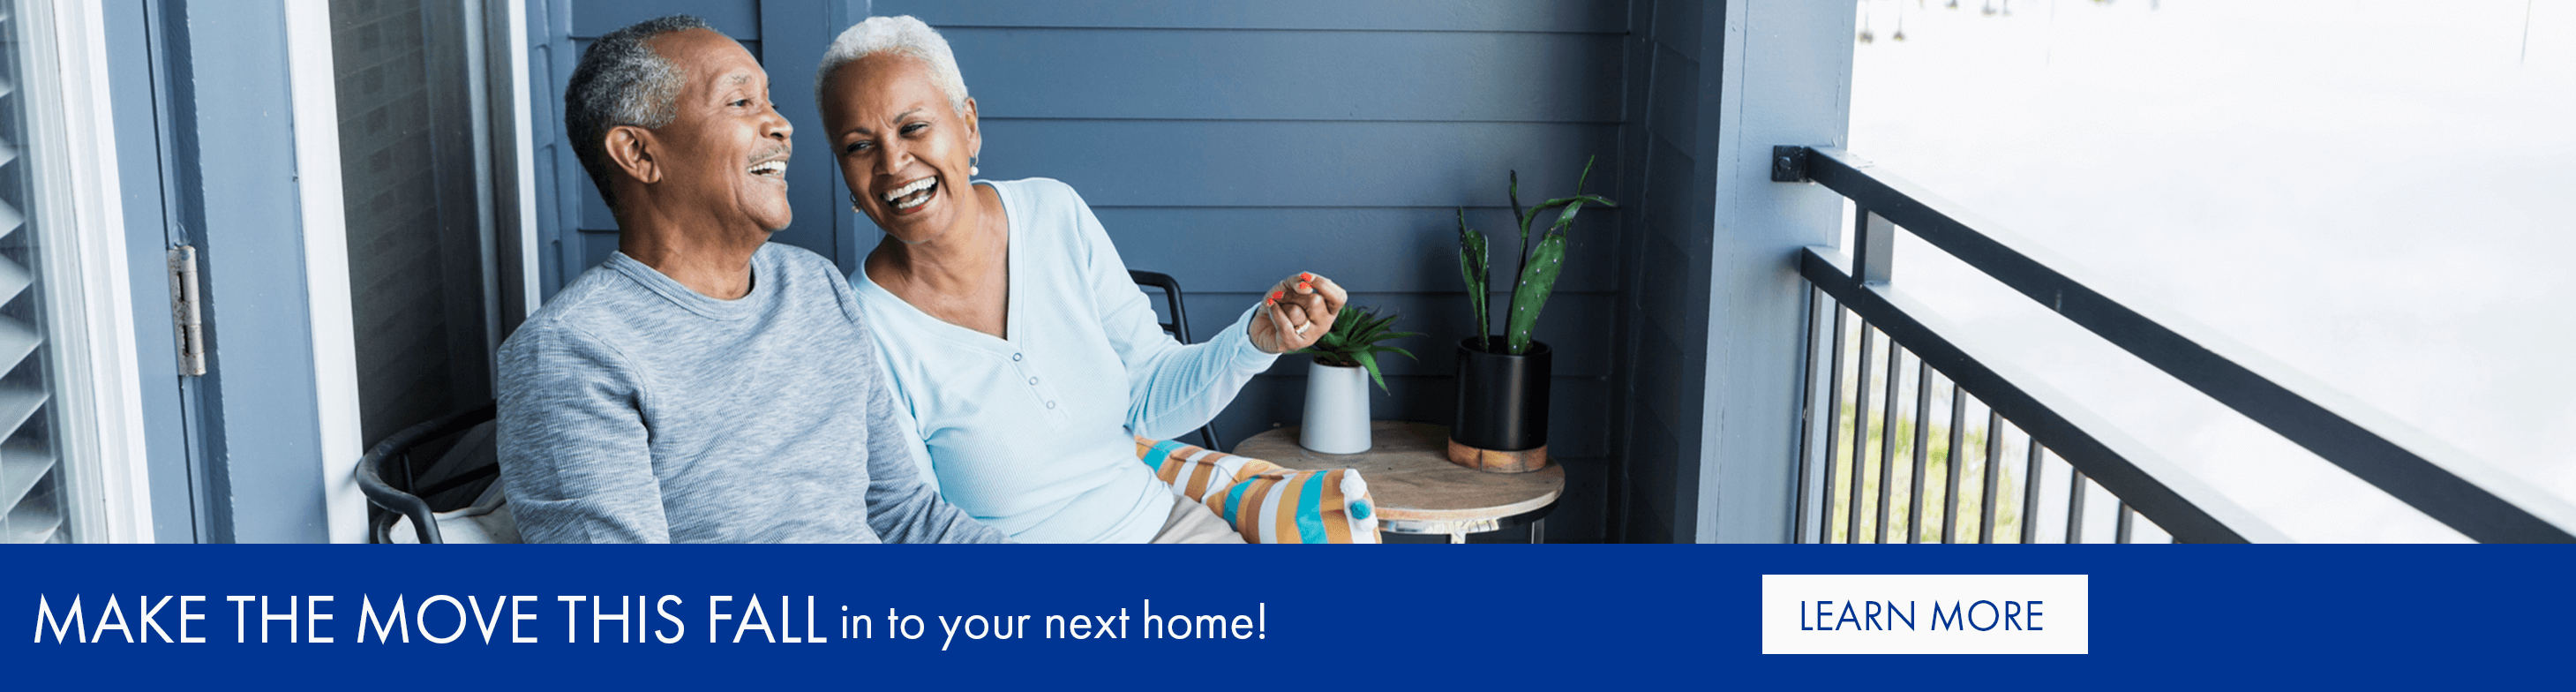 Make the move this fall in to your next home!